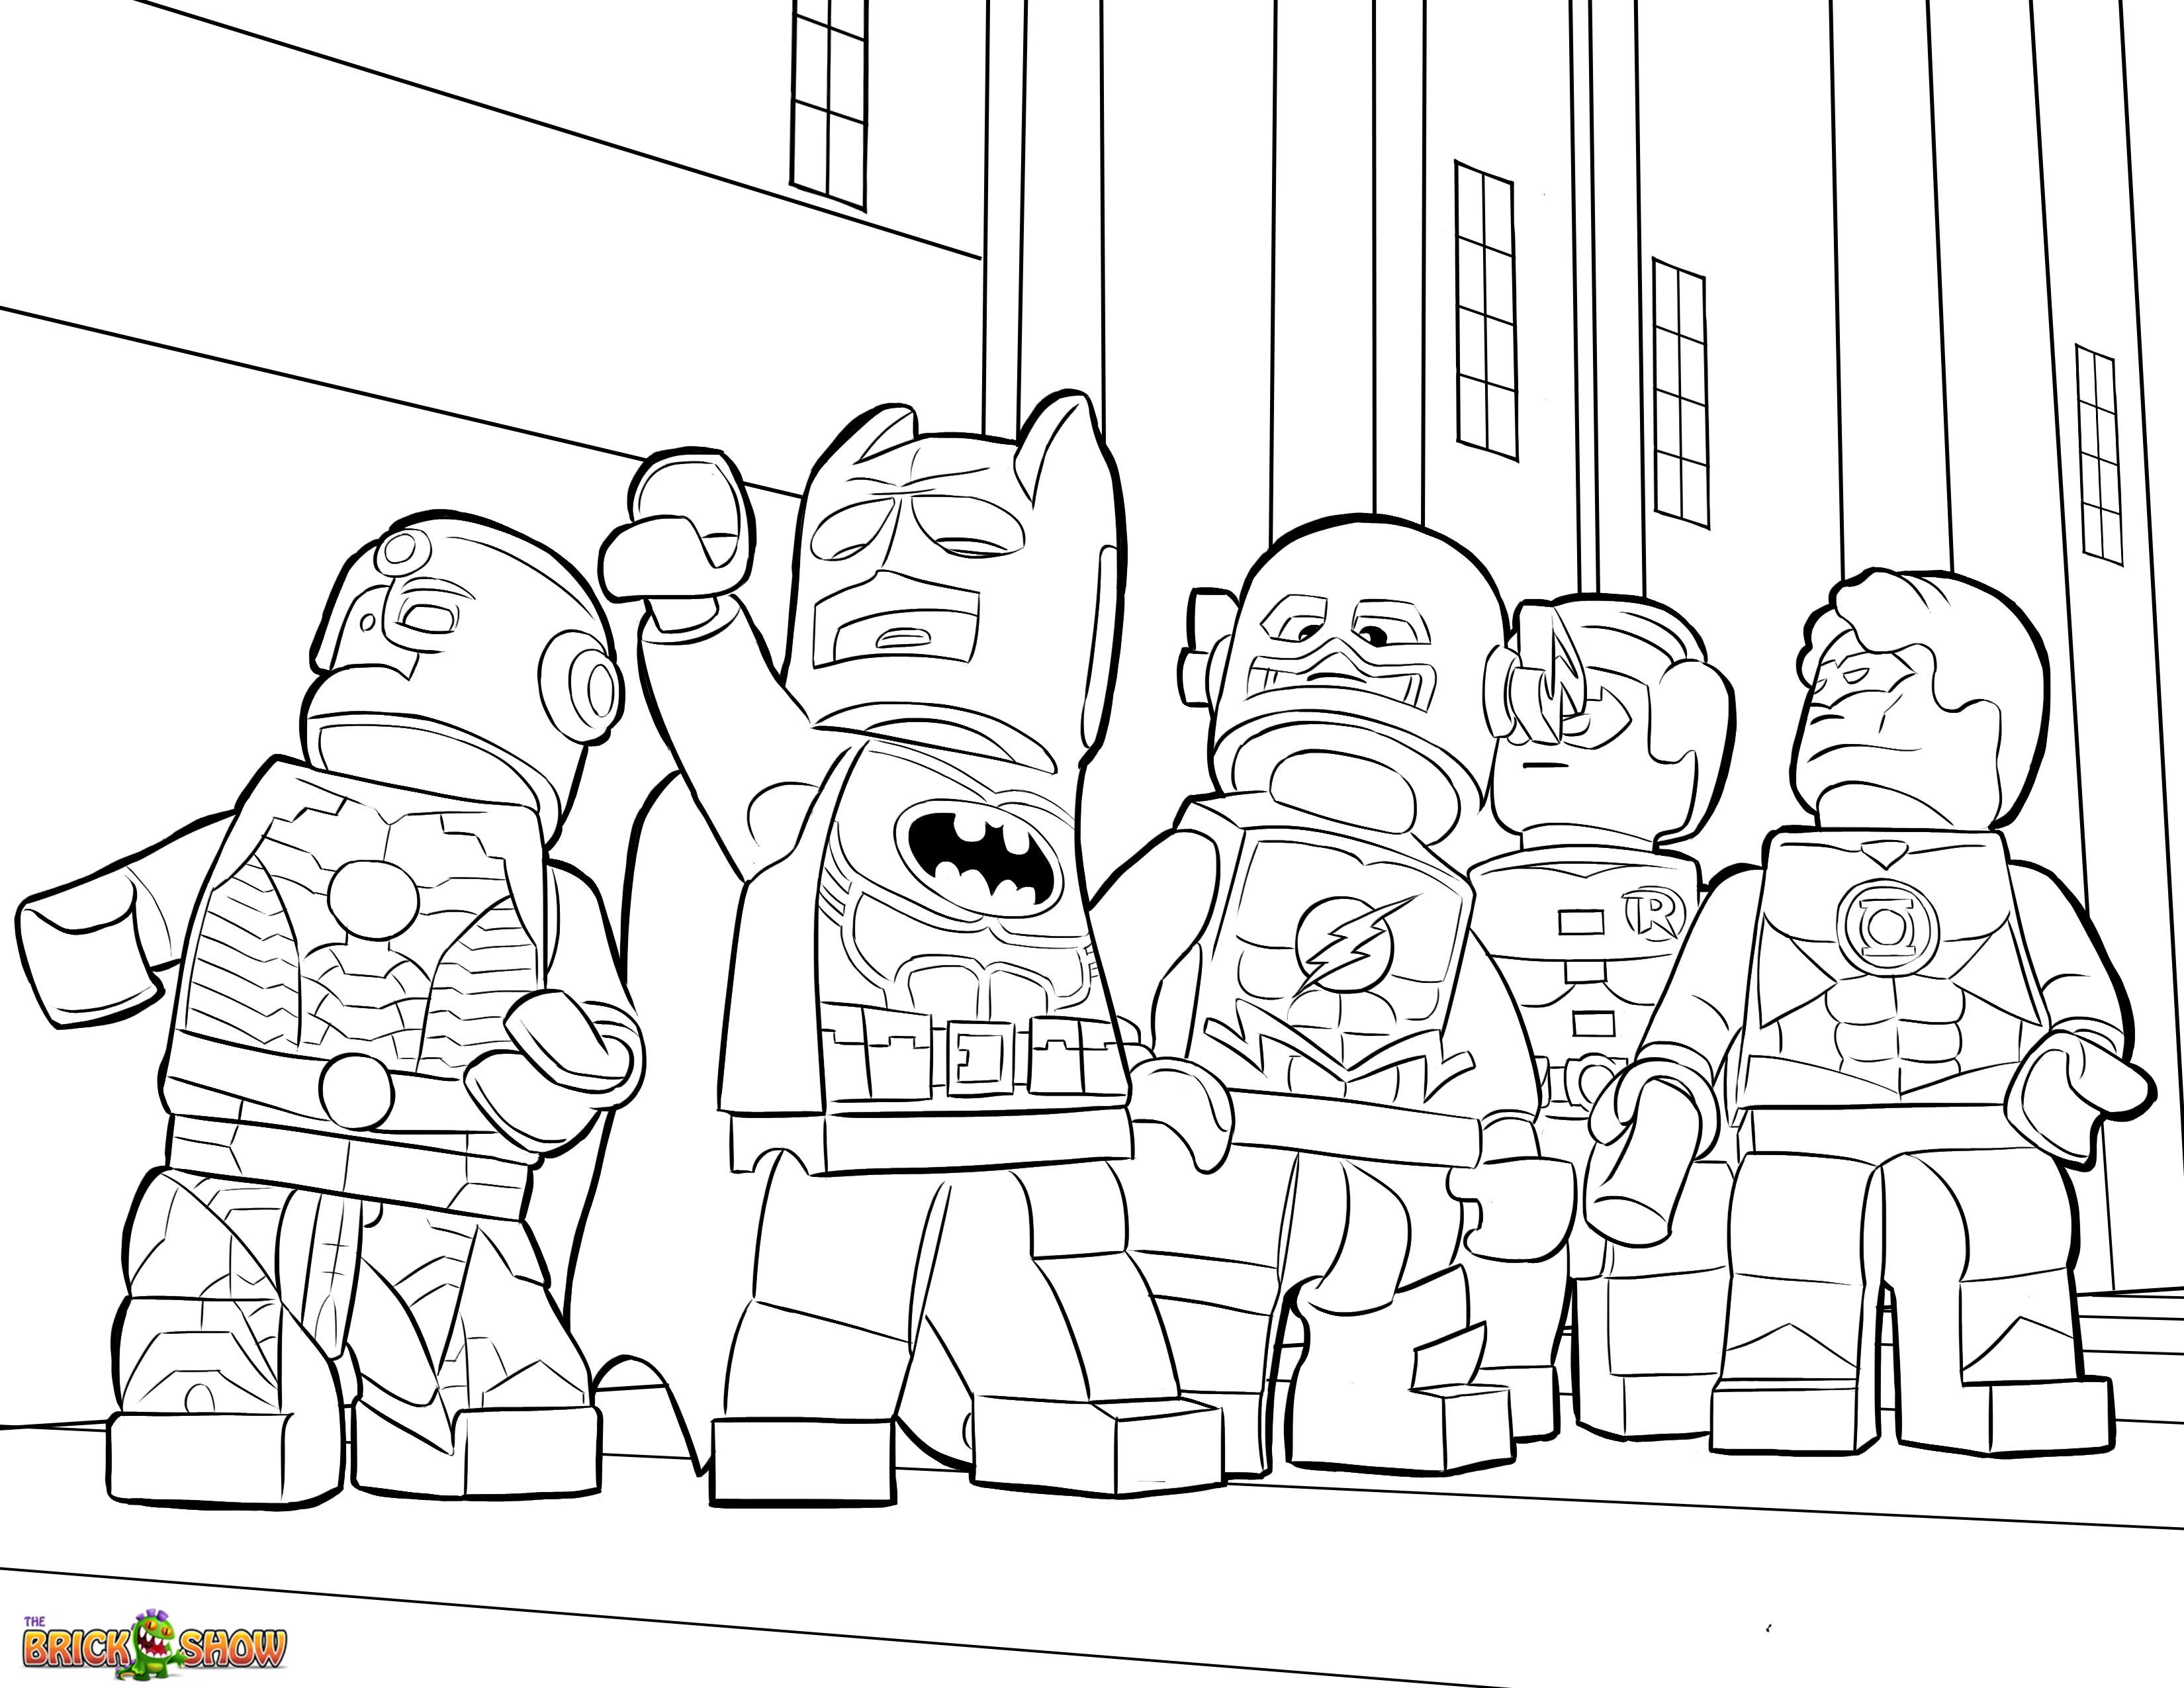 Lego Batman Coloring Pages Free Printables Lego Coloring Pages Lego Movie Coloring Pages Avengers Coloring Pages